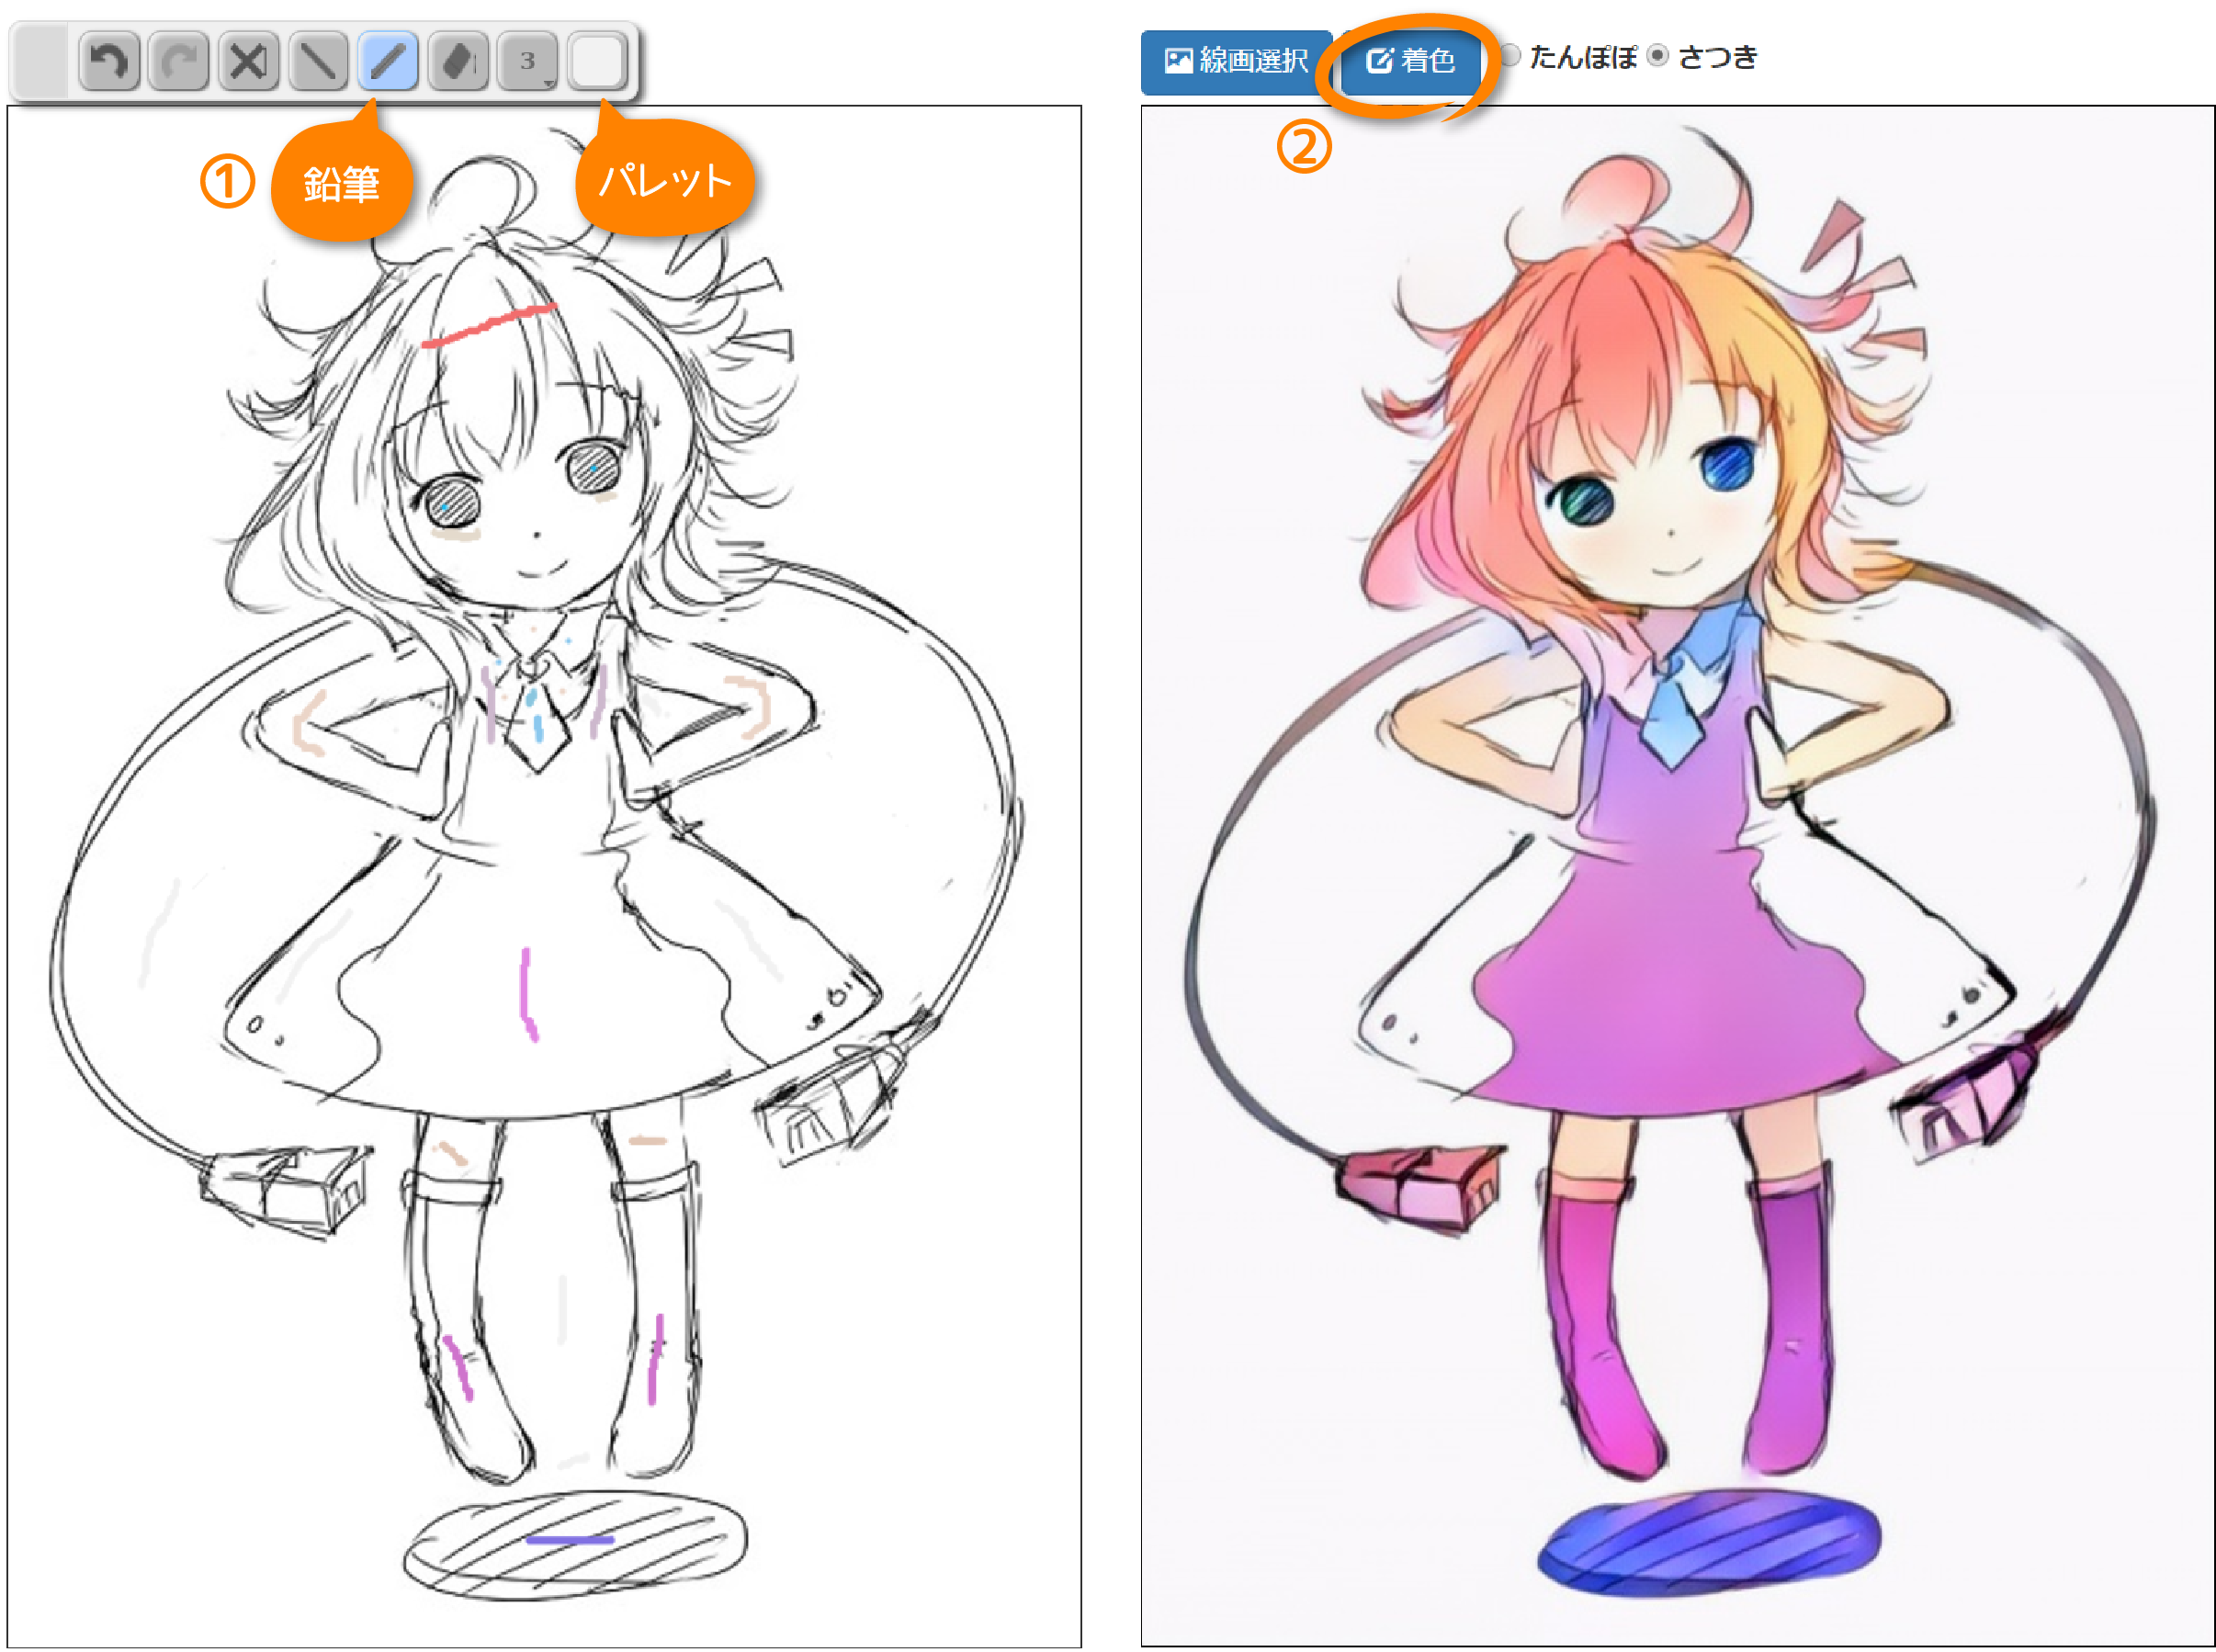 Add hint information using color pen in left image and click the 'colorize' botton for recolorization